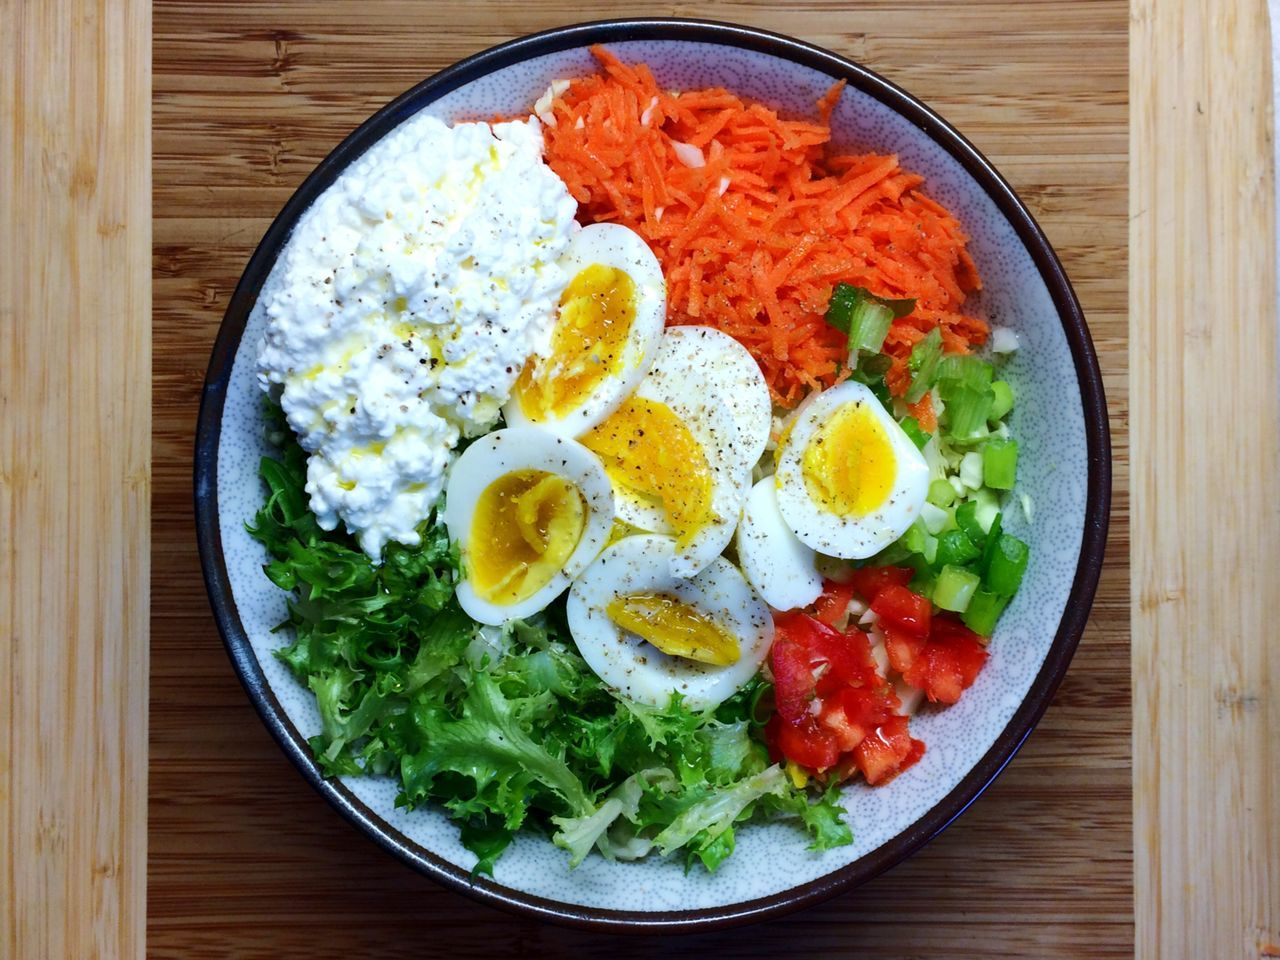 Egg Fried Egg Healthy Eating Egg Yolk Food High Angle View Directly Above Breakfast Indoors  Table No People Plate Freshness Ready-to-eat Sunny Side Up Close-up Day